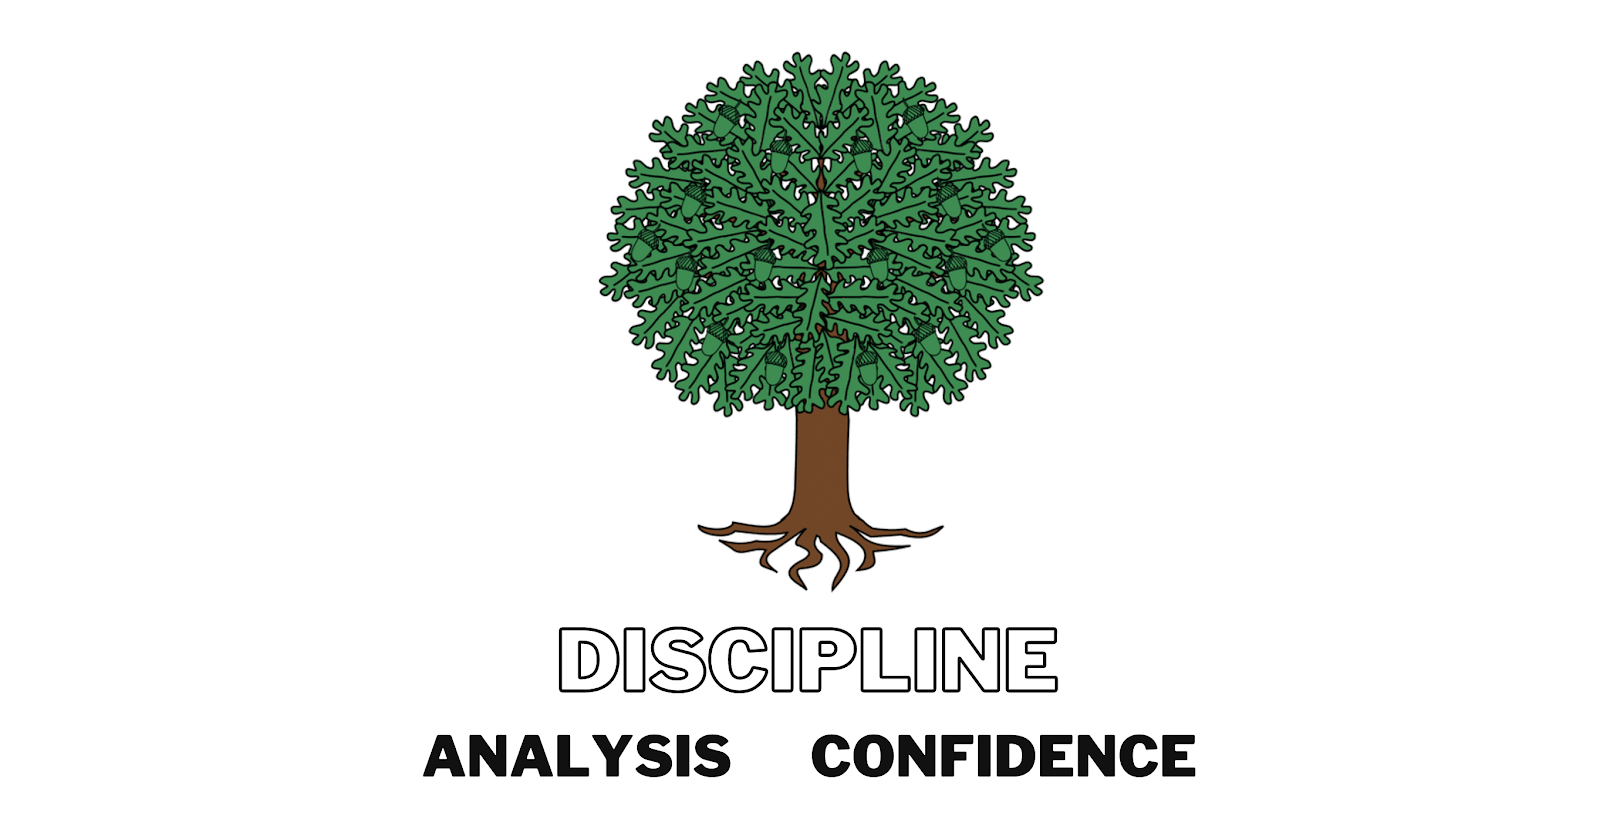 discipline analysis confidence Oleksandr Tereshchuk